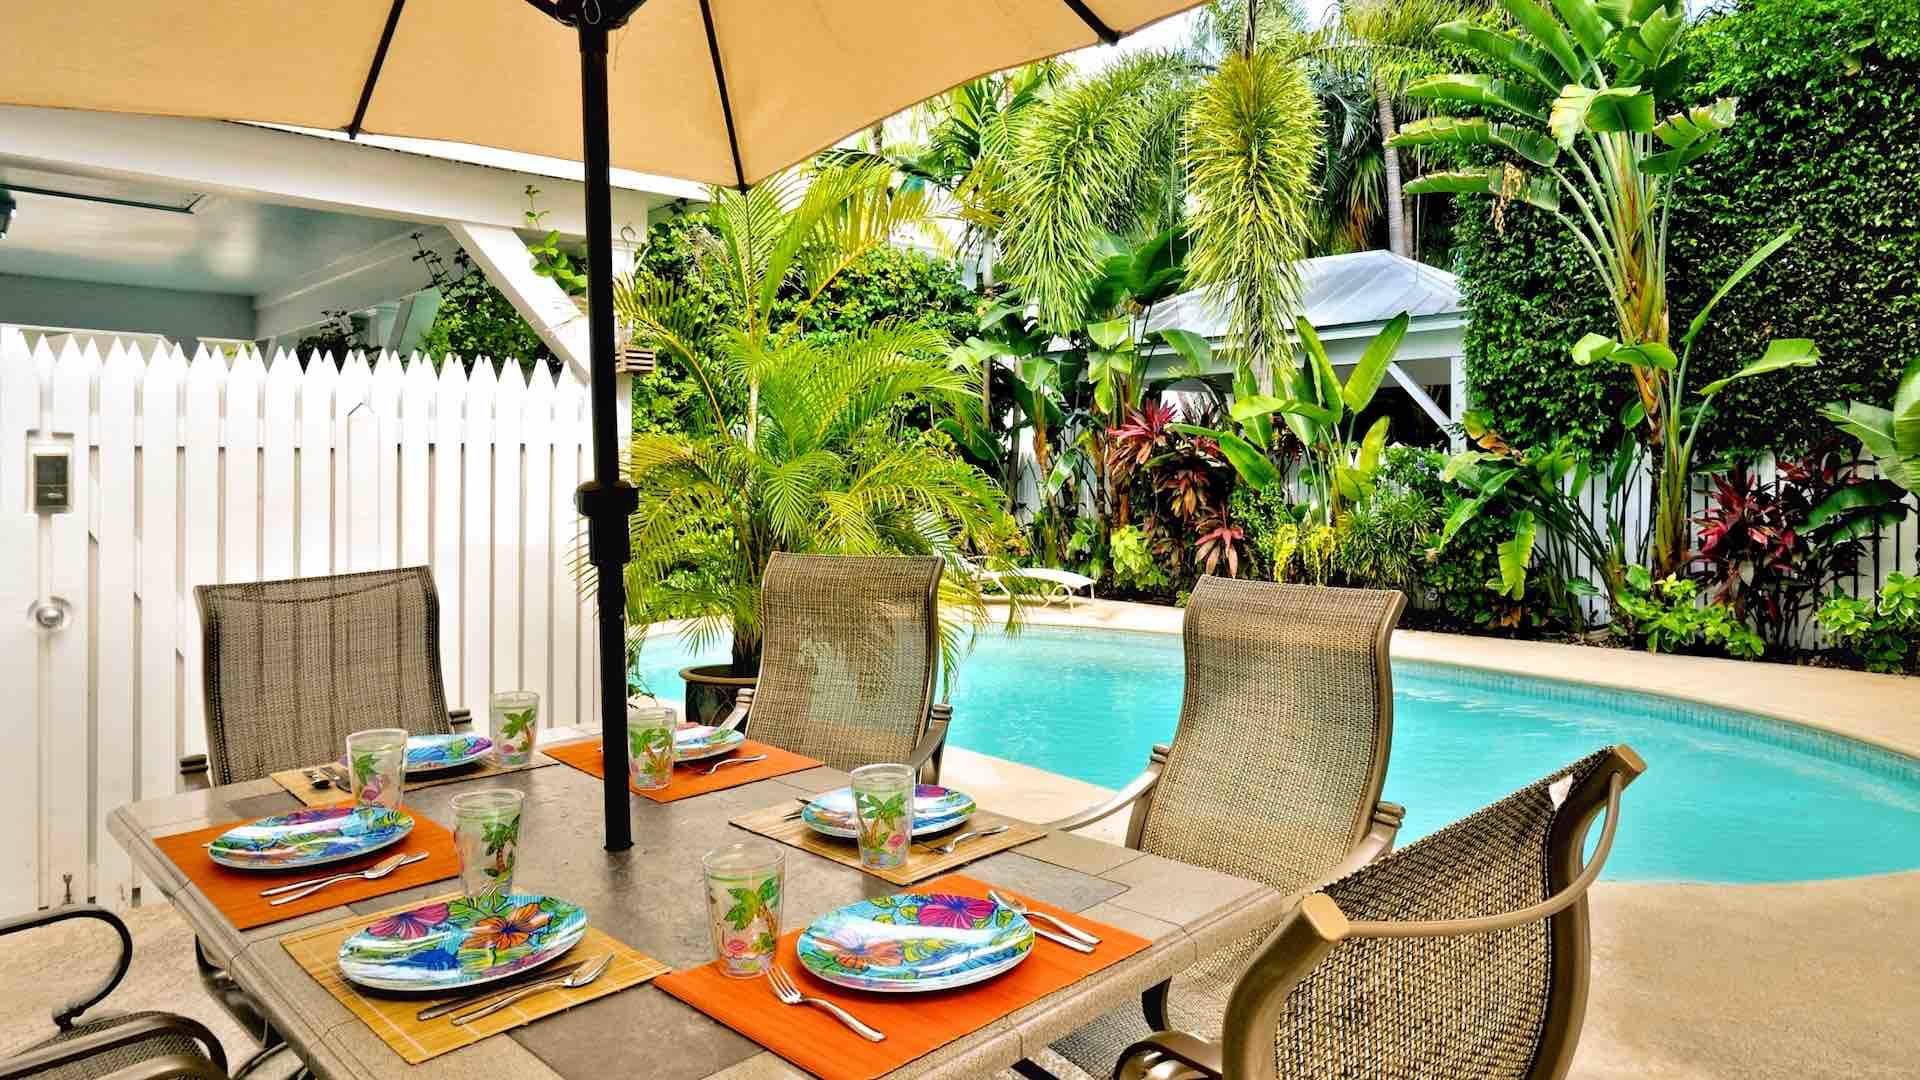 Key West 3 bedroom vacation home with pool located in Truman Annex rents weekly